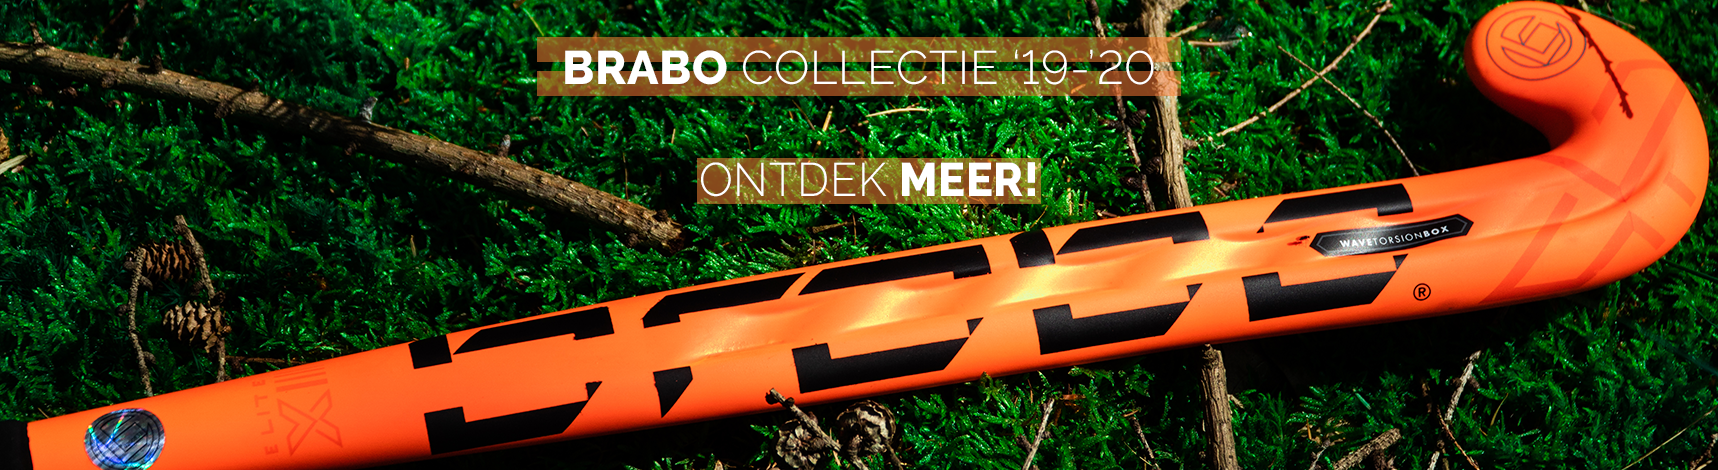 Brabo Collectie